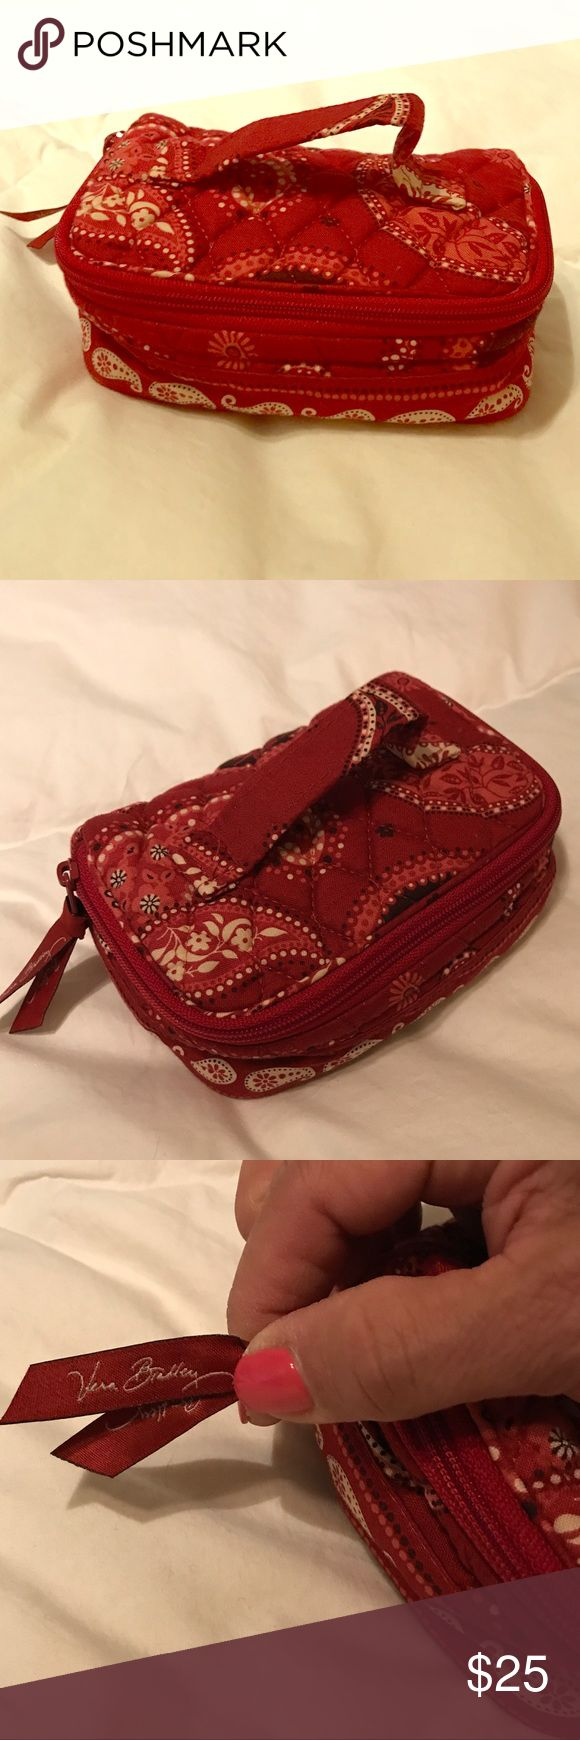 Vera Bradley Travel Jewelry Box Vera Bradley Travel Jewelry Box in beautiful, red Vera Bradley pattern. This is an older pattern that is very hard to find. EUC with zippers and different compartments to keep your jewelry separate. Vera Bradley Bags Travel Bags